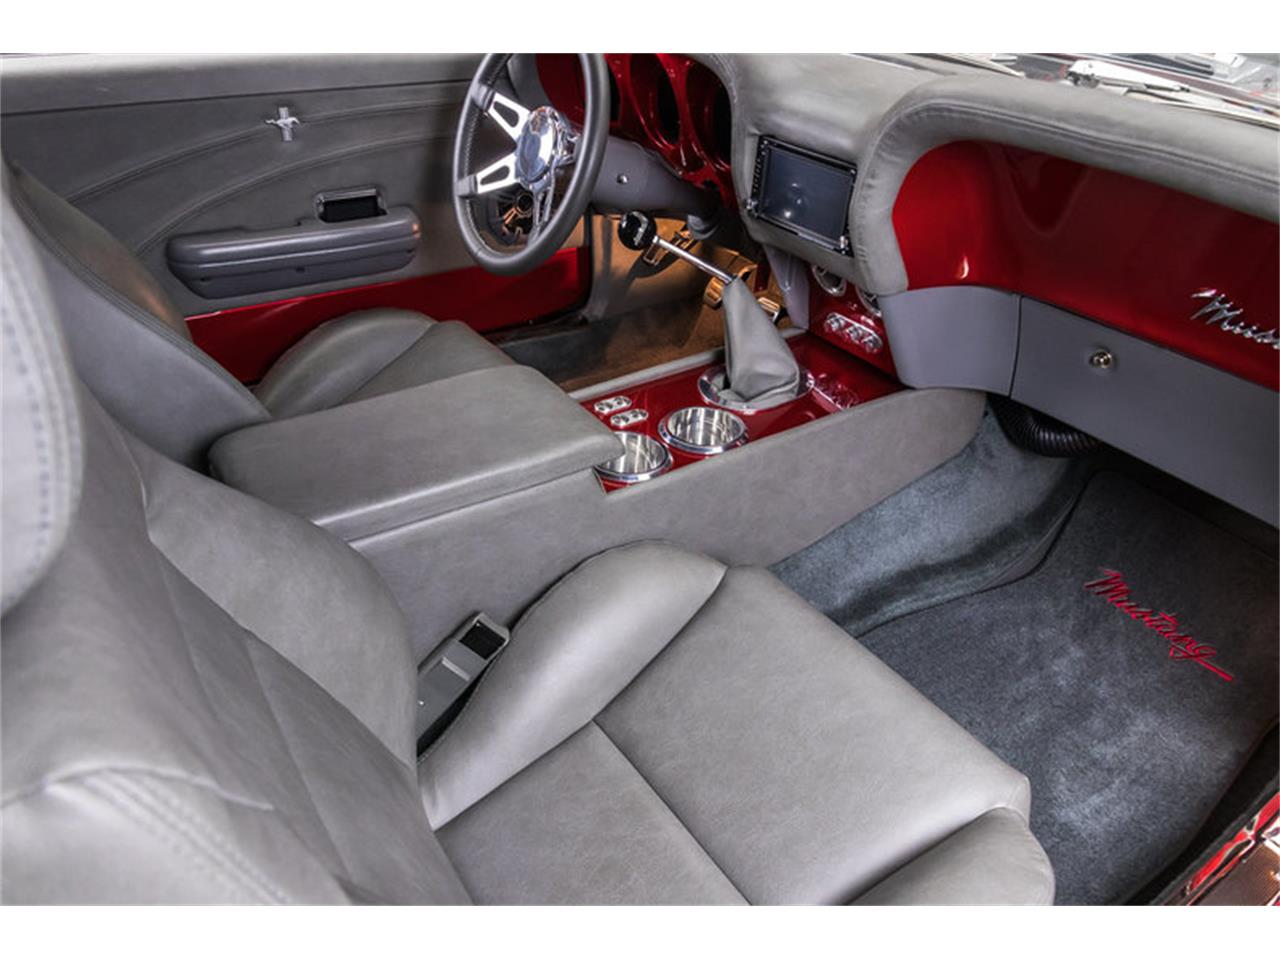 Large Picture of 1969 Mustang Fastback Restomod - $194,900.00 Offered by Vanguard Motor Sales - L6C8